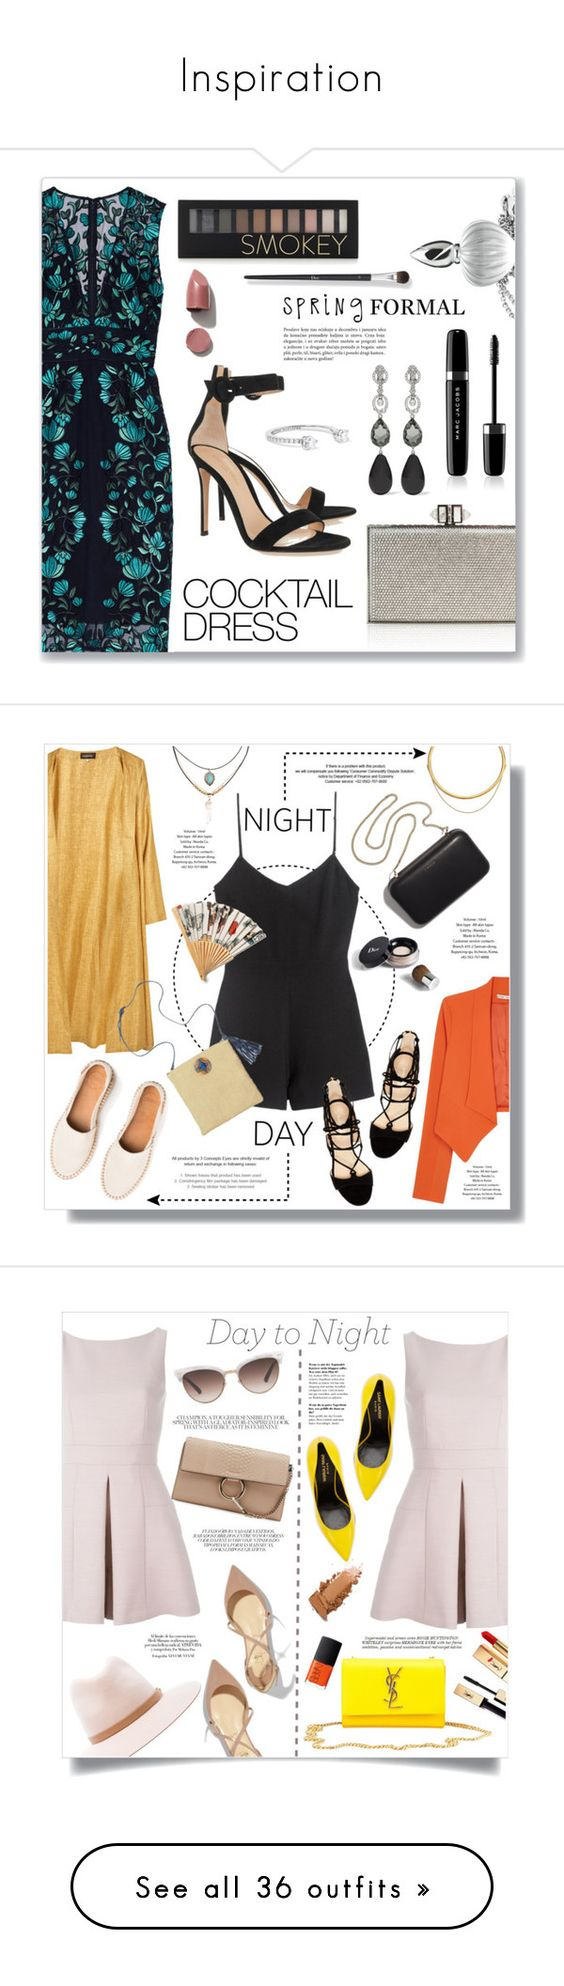 """""""Inspiration"""" by de-rossi ❤ liked on Polyvore featuring Lela Rose, Gianvito Rossi, Judith Leiber, Oscar de la Renta, Delfina Delettrez, Libertine, Marc Jacobs, N°21, Forever 21 and polyvoreeditorial"""